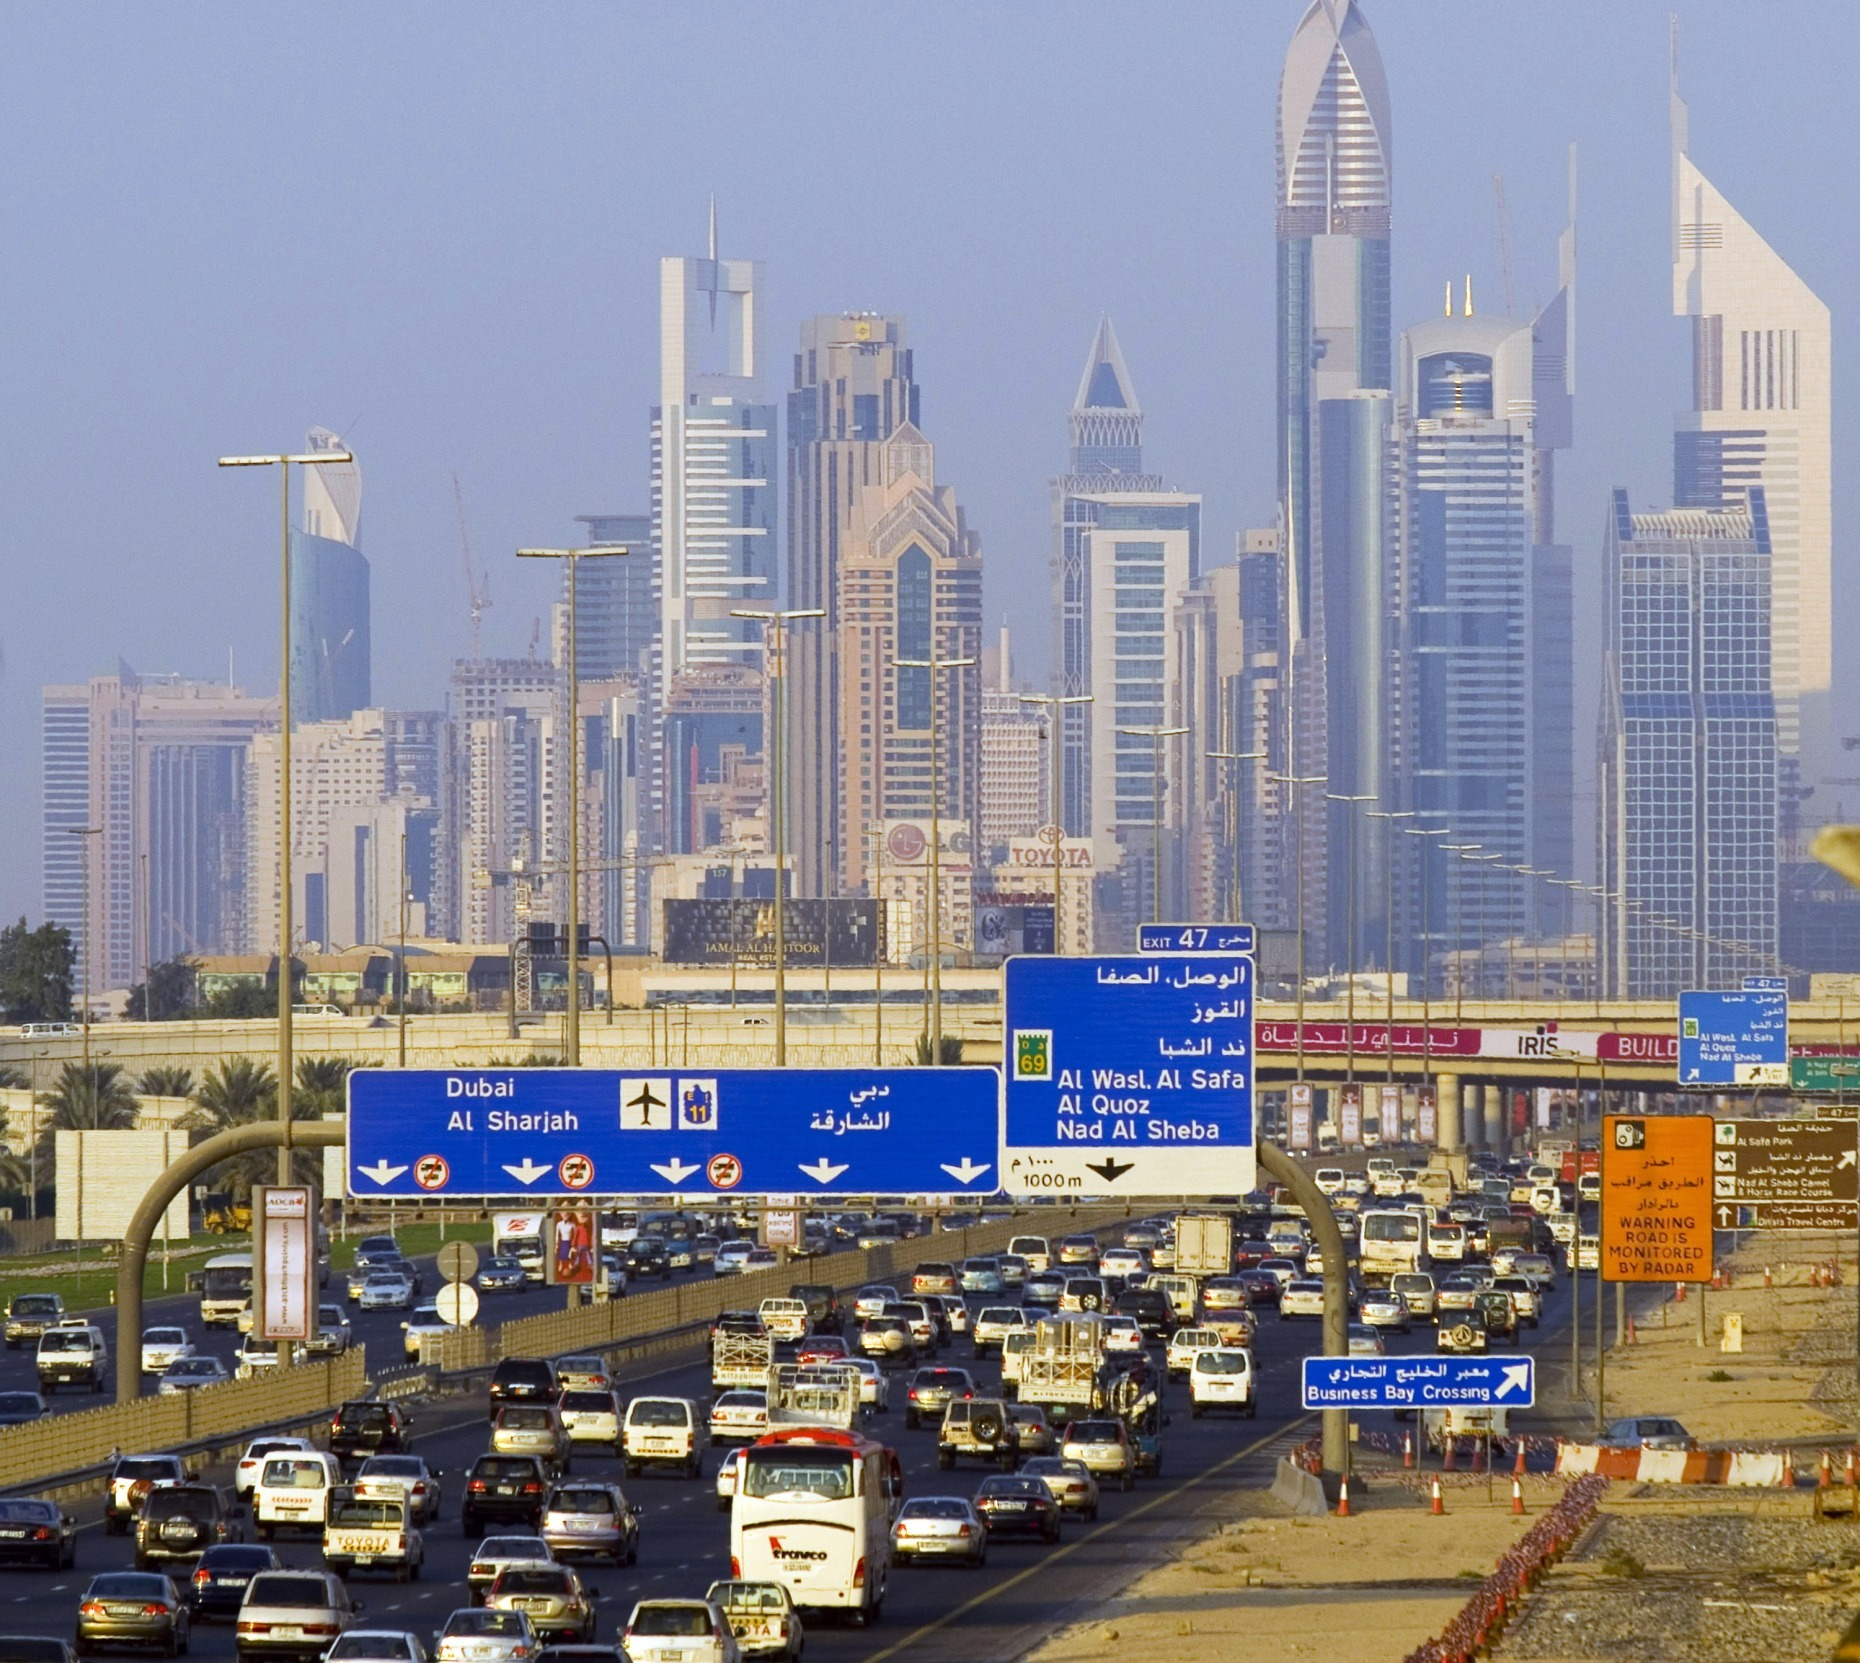 Commuters travel down Sheikh Zayed Road into Dubai, United Arab Emirates, on Sunday, Nov. 4, 2007. Dubai is situated on the Persian Gulf coast of the U.A.E. Photographer: CHARLES CROWELL